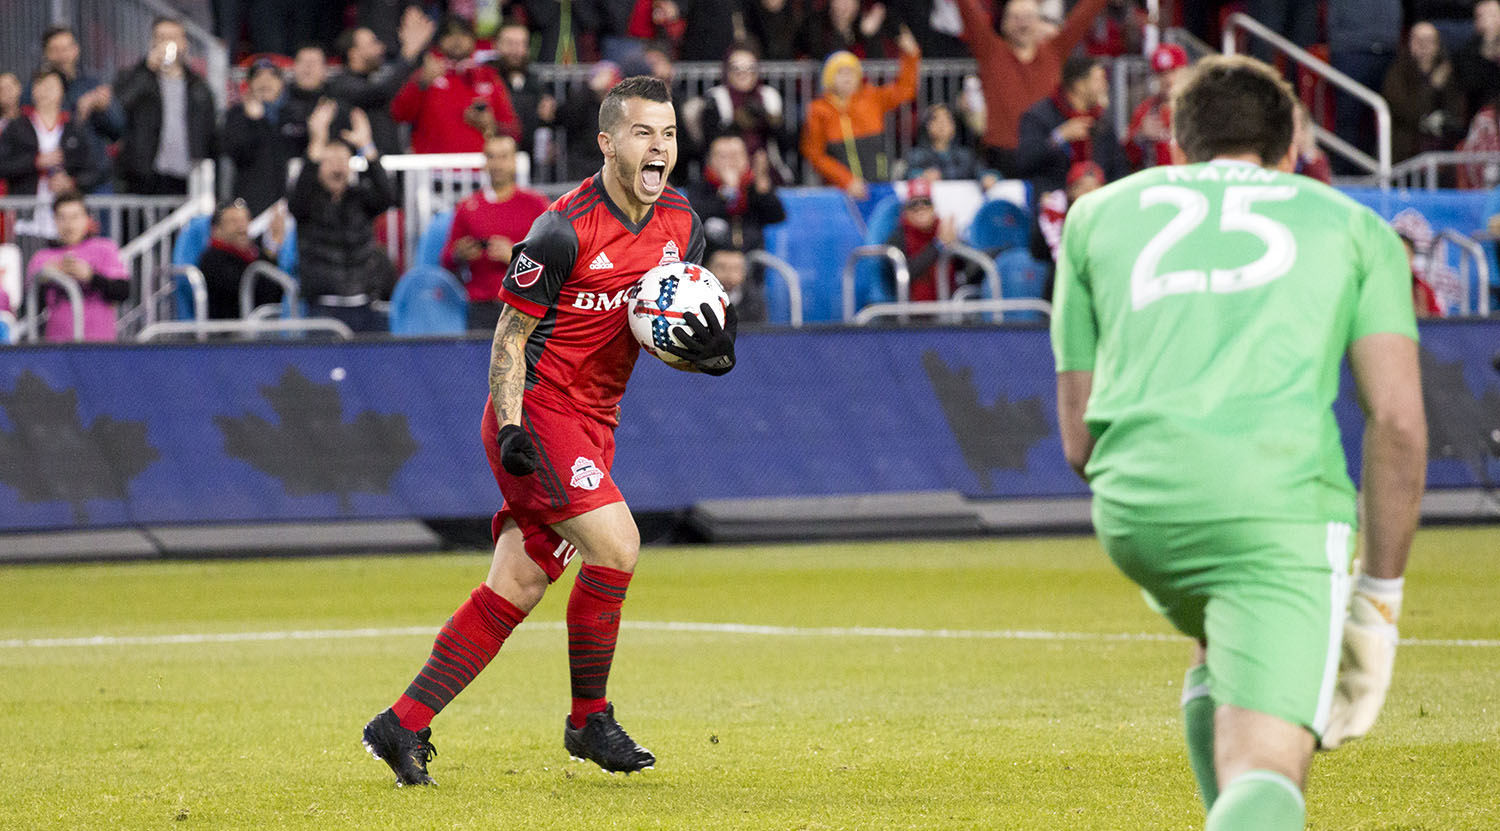 Sebastian Giovinco celebrating a goal with the ball in hand during a Major League Soccer game against Atlanta United FC. Image by Dennis Marciniak of denMAR Media.